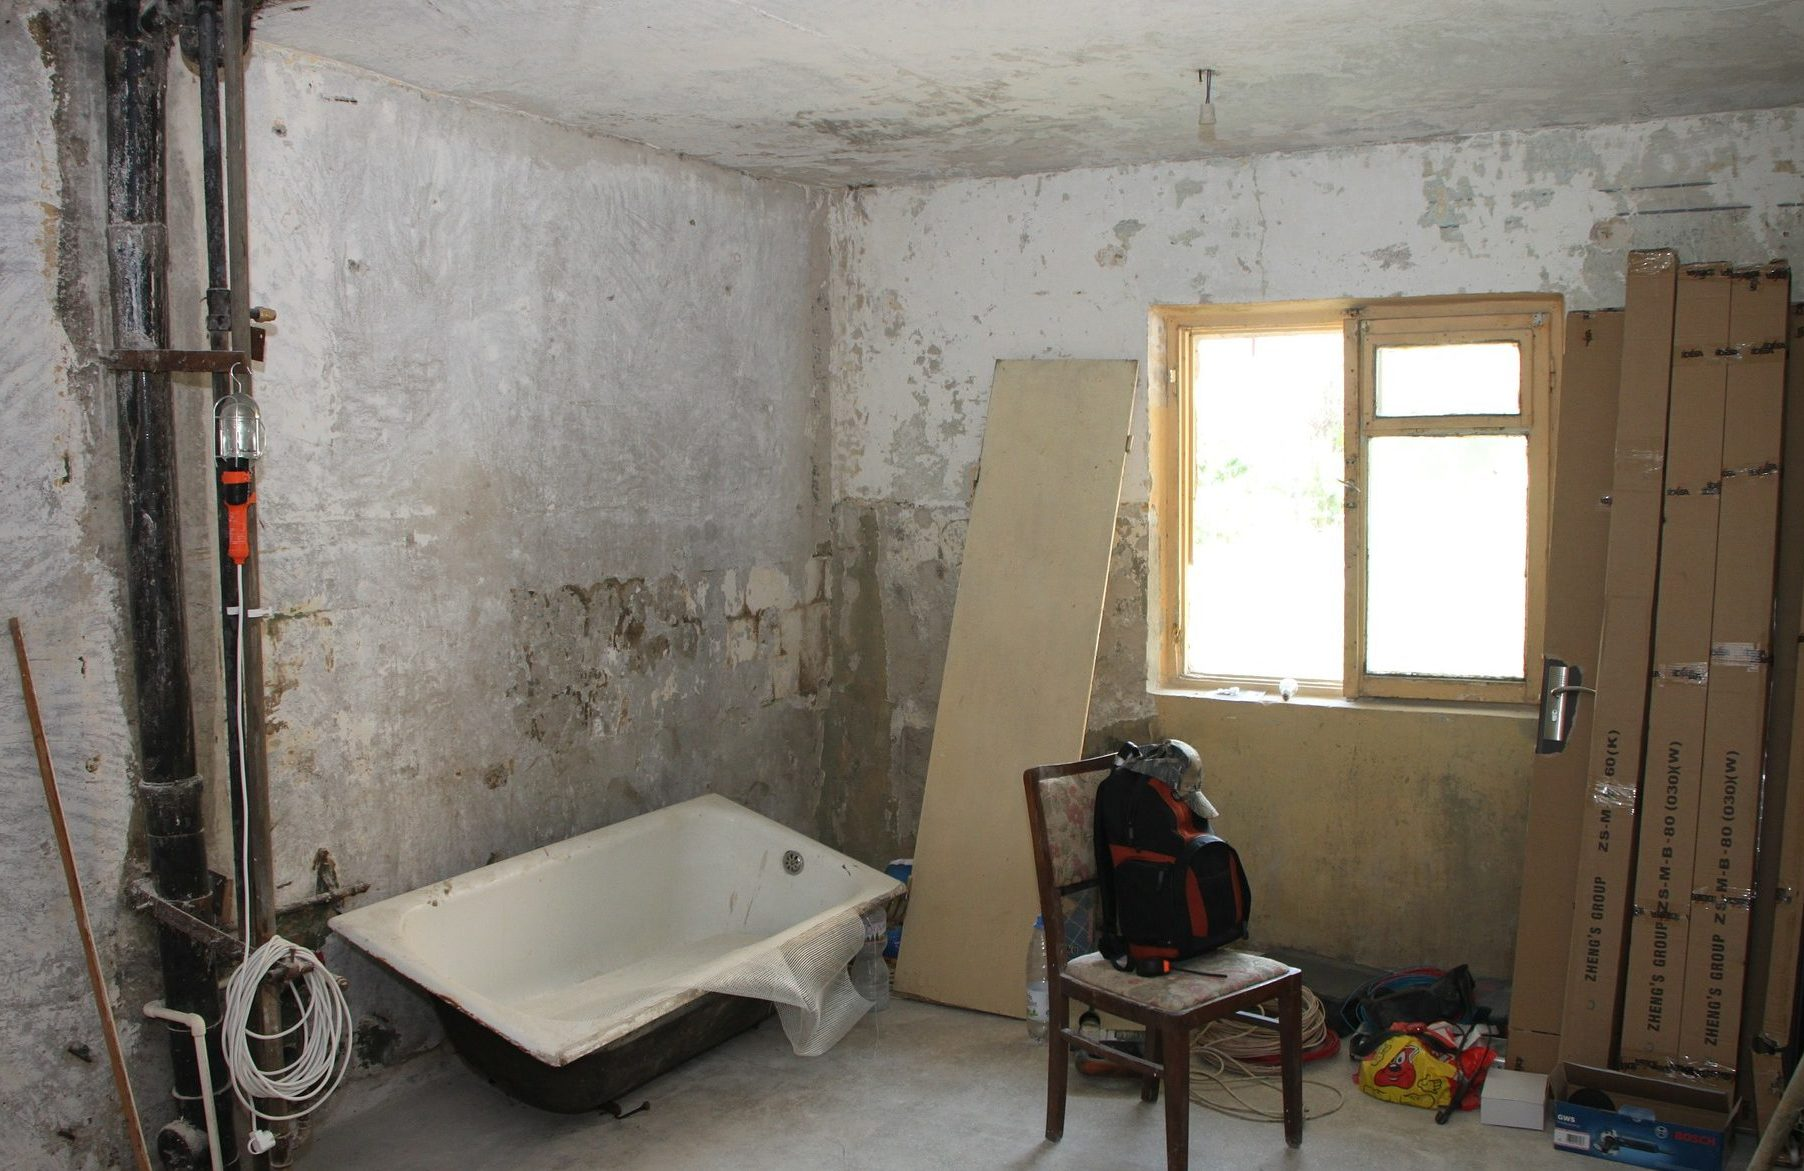 Room in complete disrepair with no wall or floor coverings, broken bathtub, wood and doors leaning against wall, exposed pipe. Tools sitting on a chair and floor awaiting repairs.